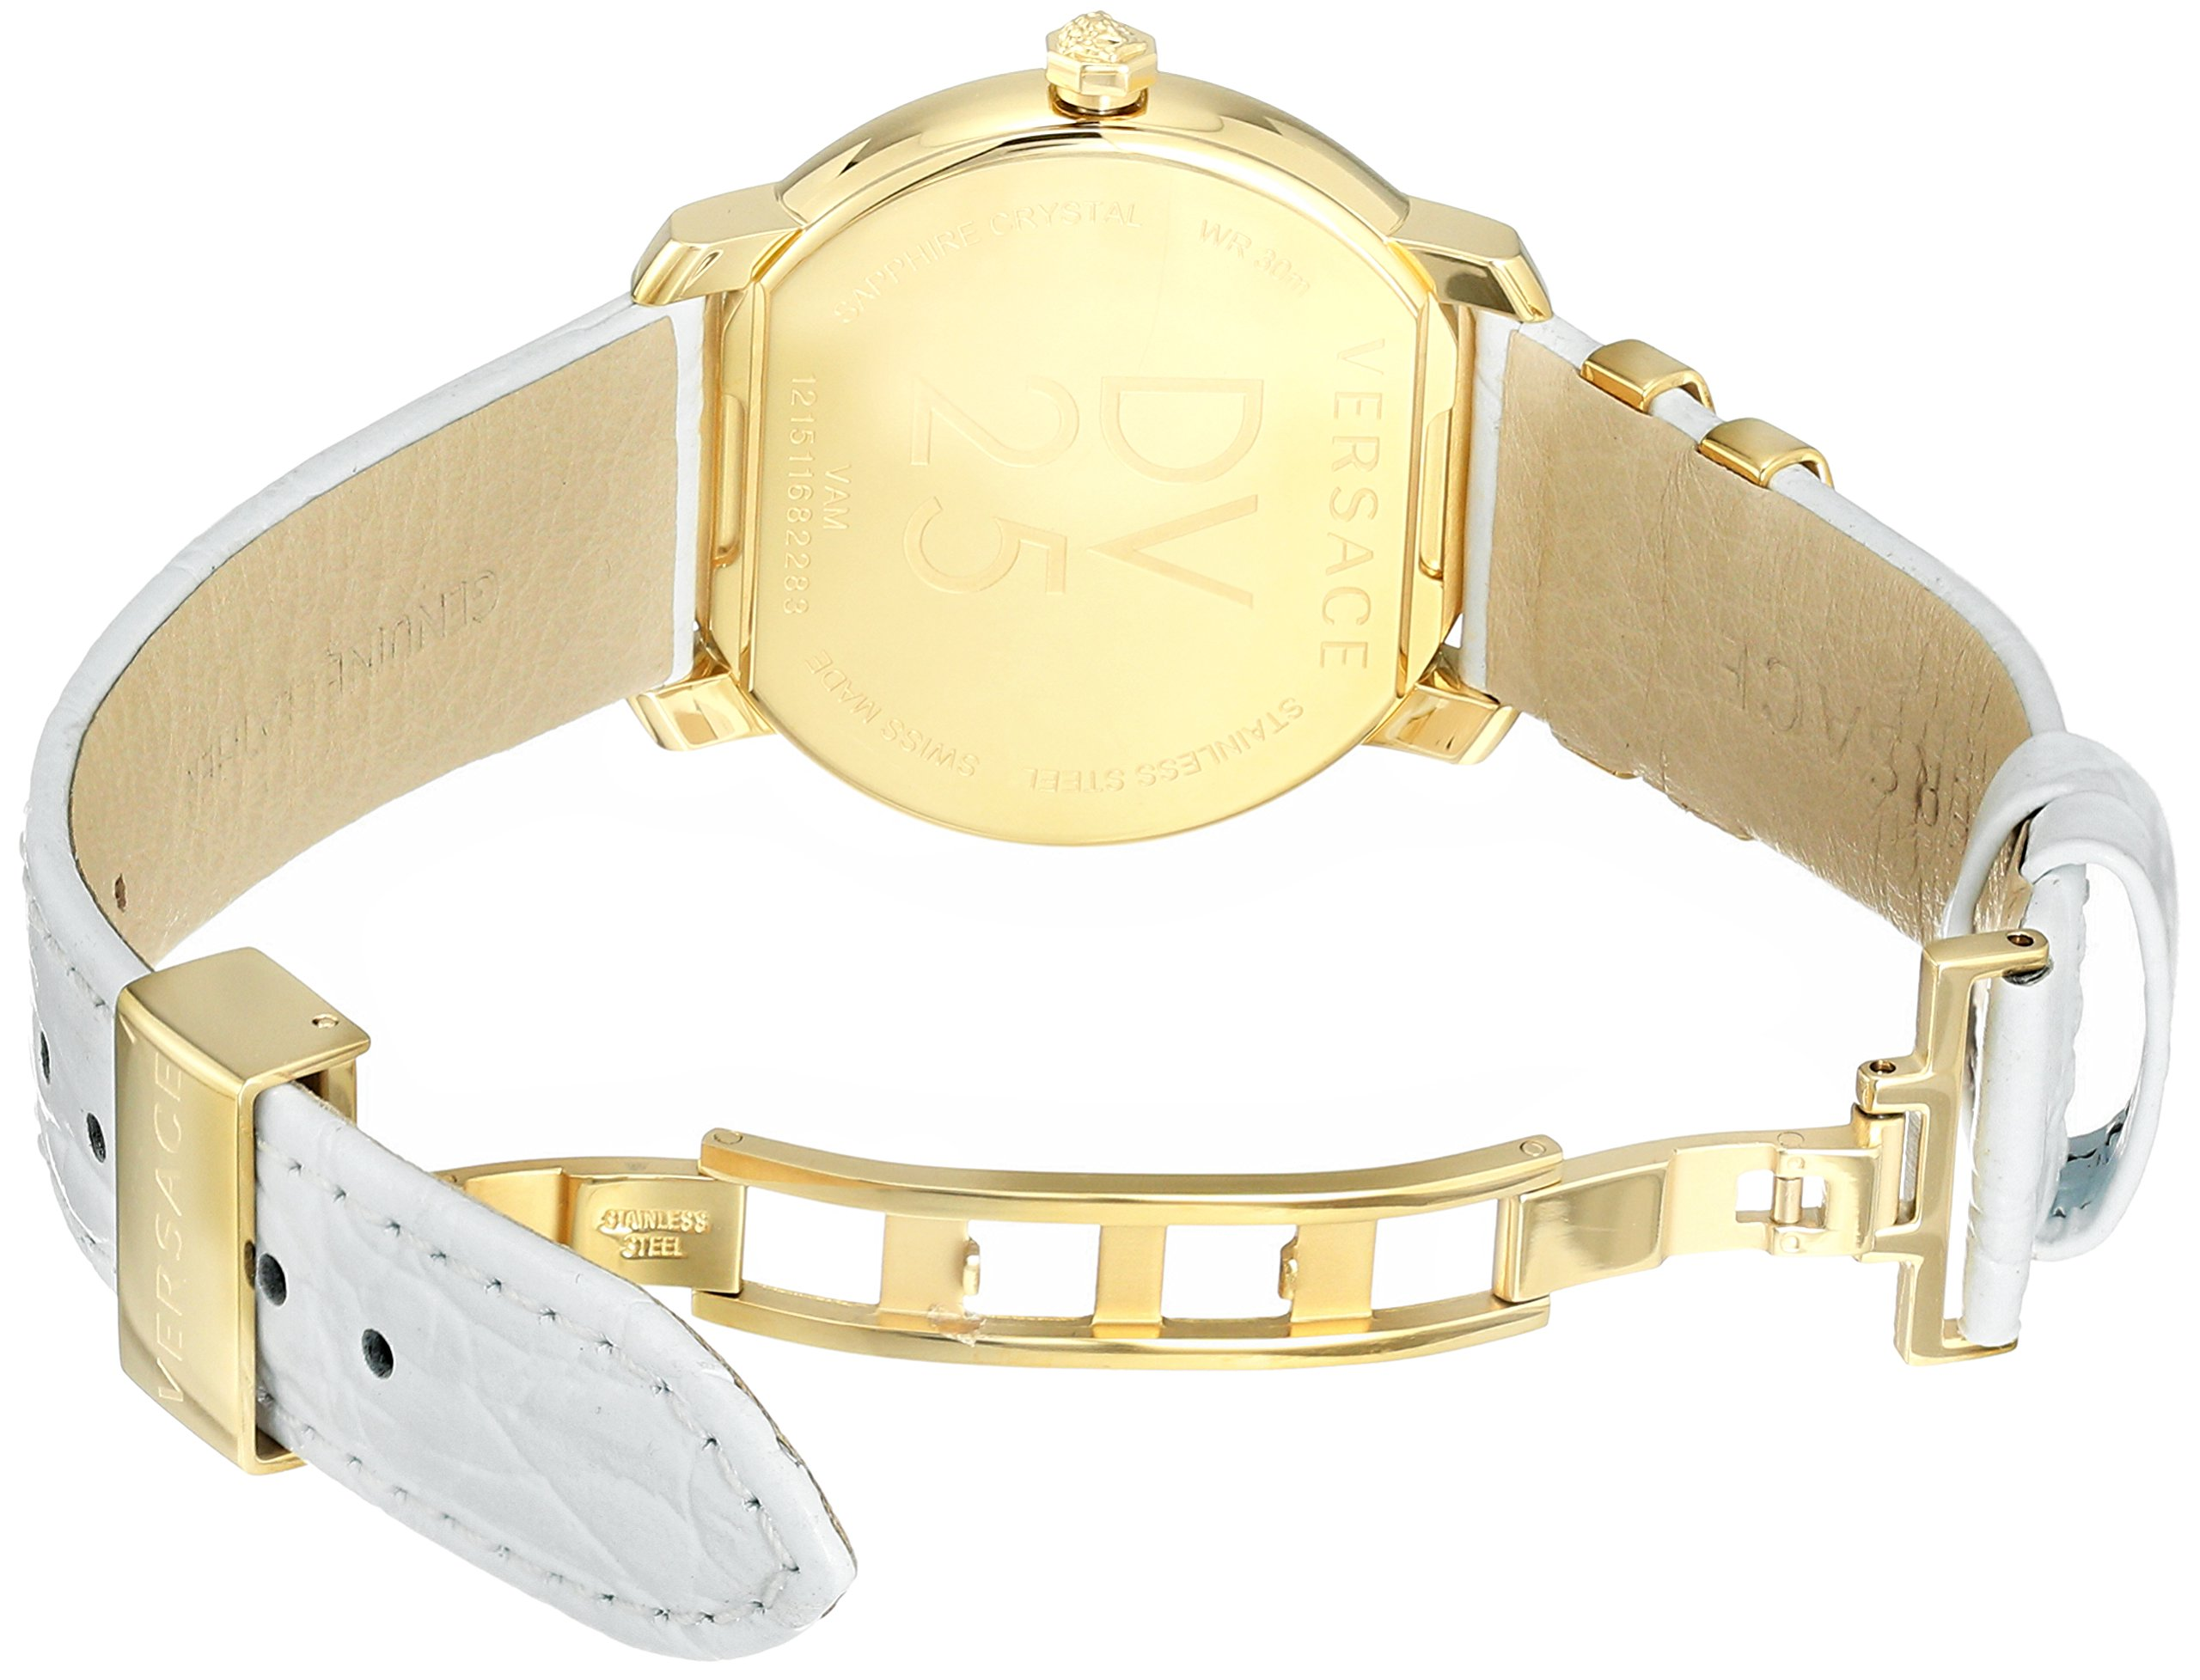 Versace Women's 'DV-25' Swiss Quartz Stainless Steel and Leather Casual Watch, Color:White (Model: VAM060016) by Versace (Image #5)